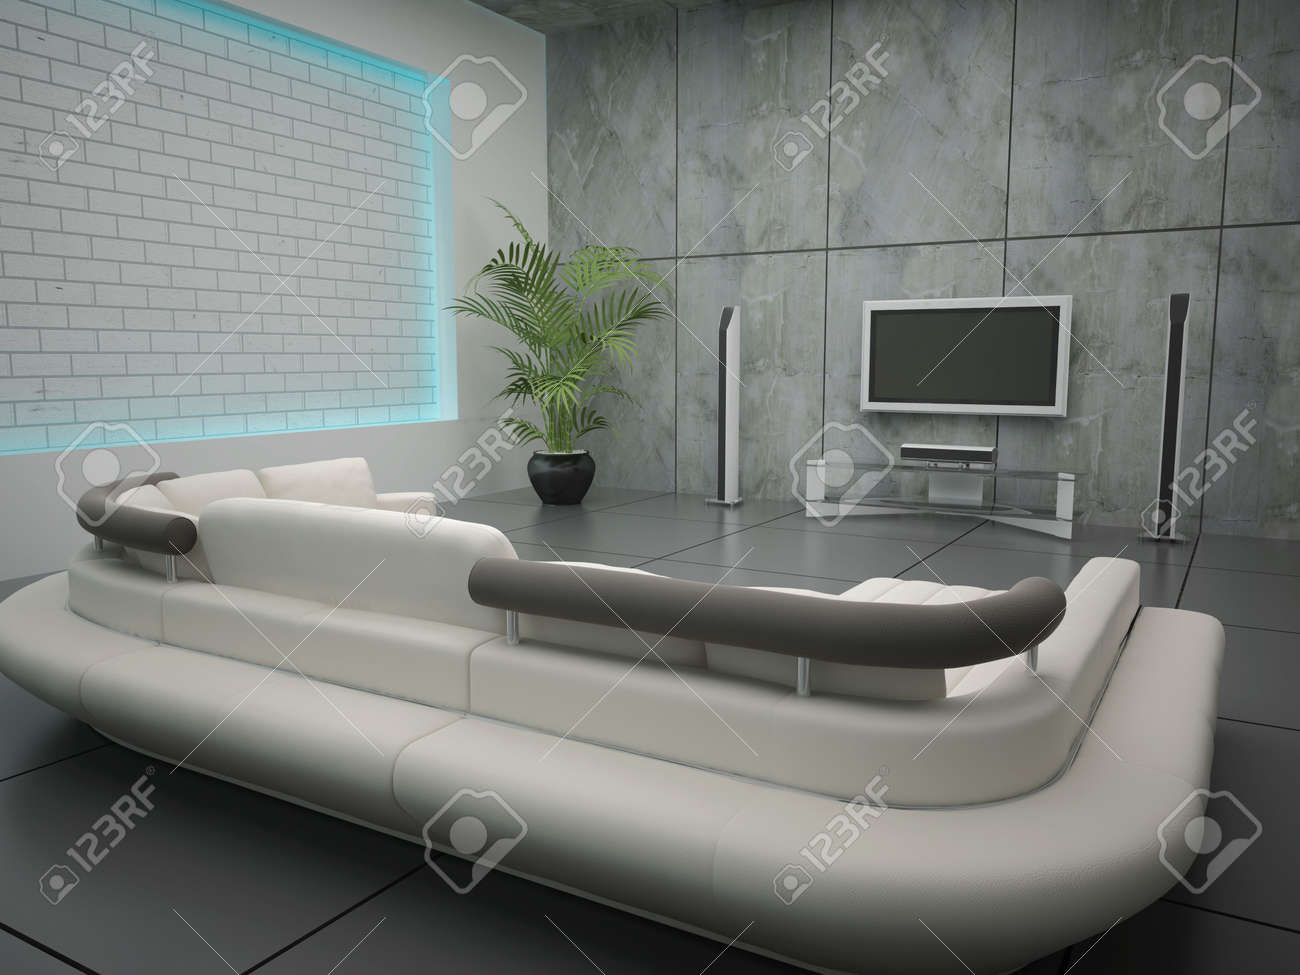 High resolution image interior. 3d illustration modern interior. Living room. Stock Illustration - 4588285